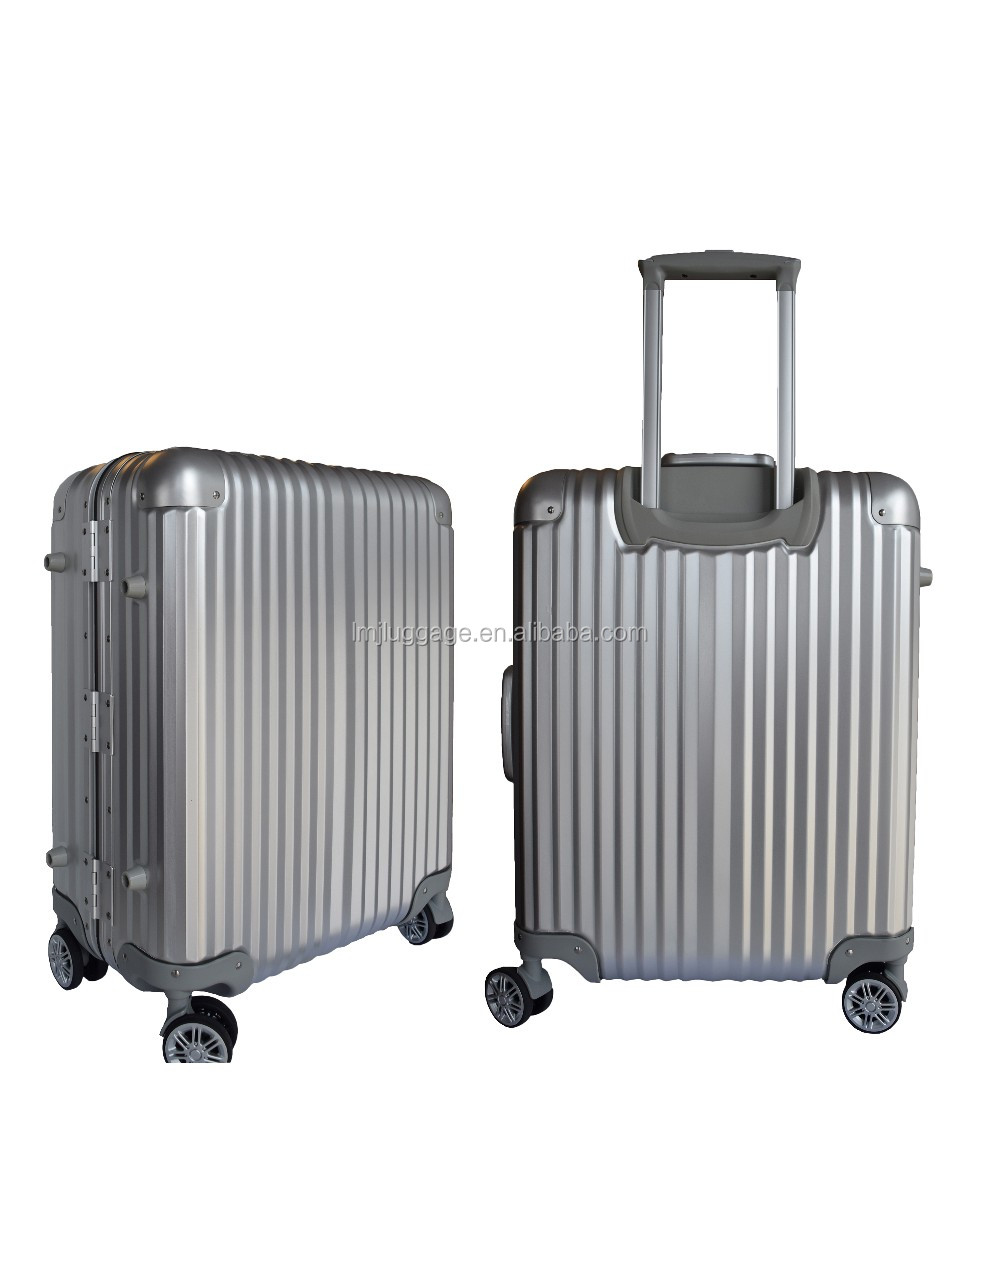 6 color Aluminum shell Multiwheel Hardside spinner Suitcases Luggage travel case wheel case